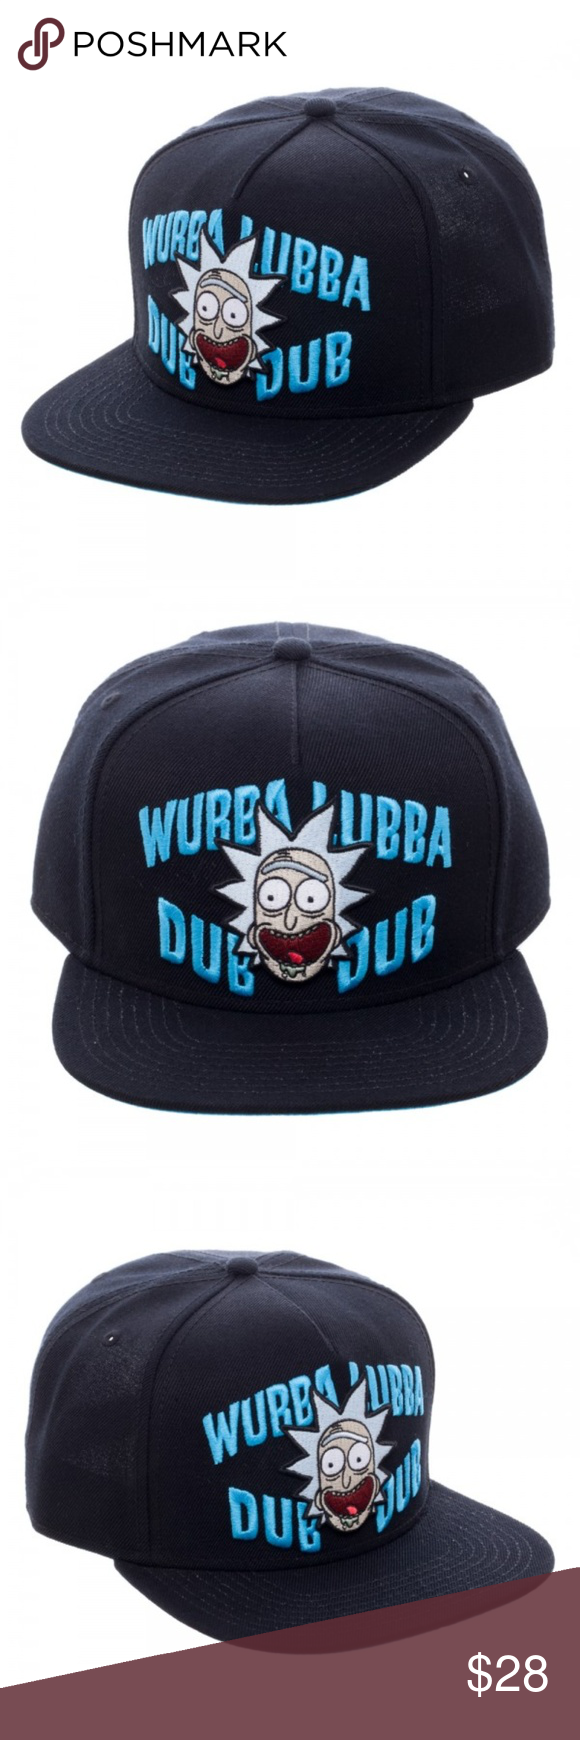 ef444aea3ab Wubba Lubba Dub Dub Rick and Morty Snapback Hat Boutique in 2018 ...